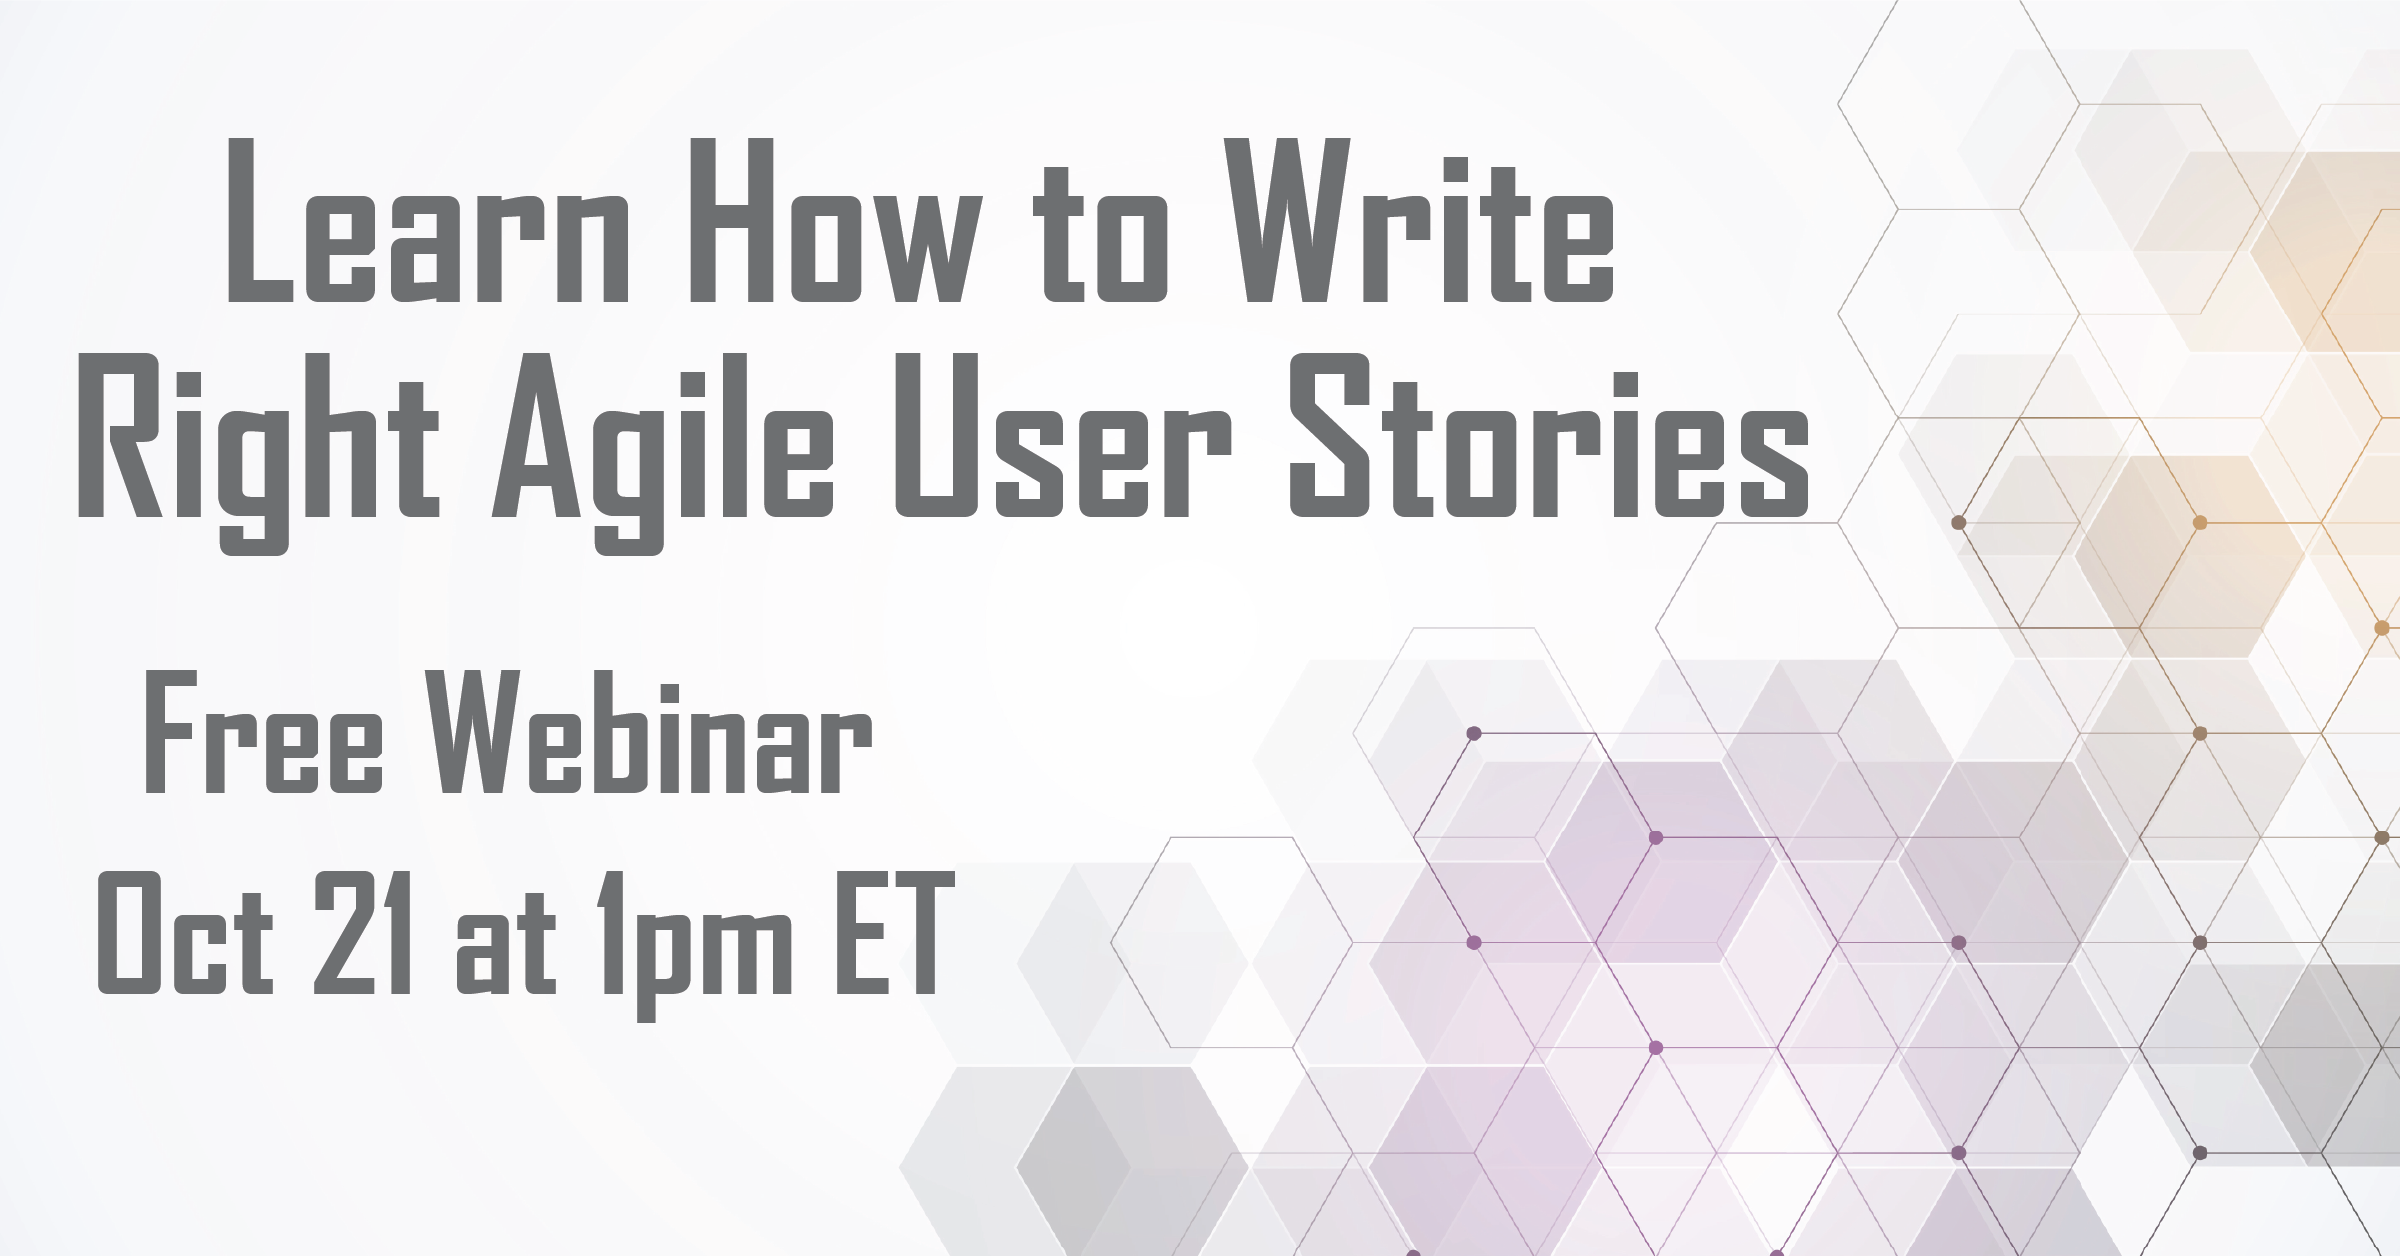 Learn How to Write Right Agile User Stories